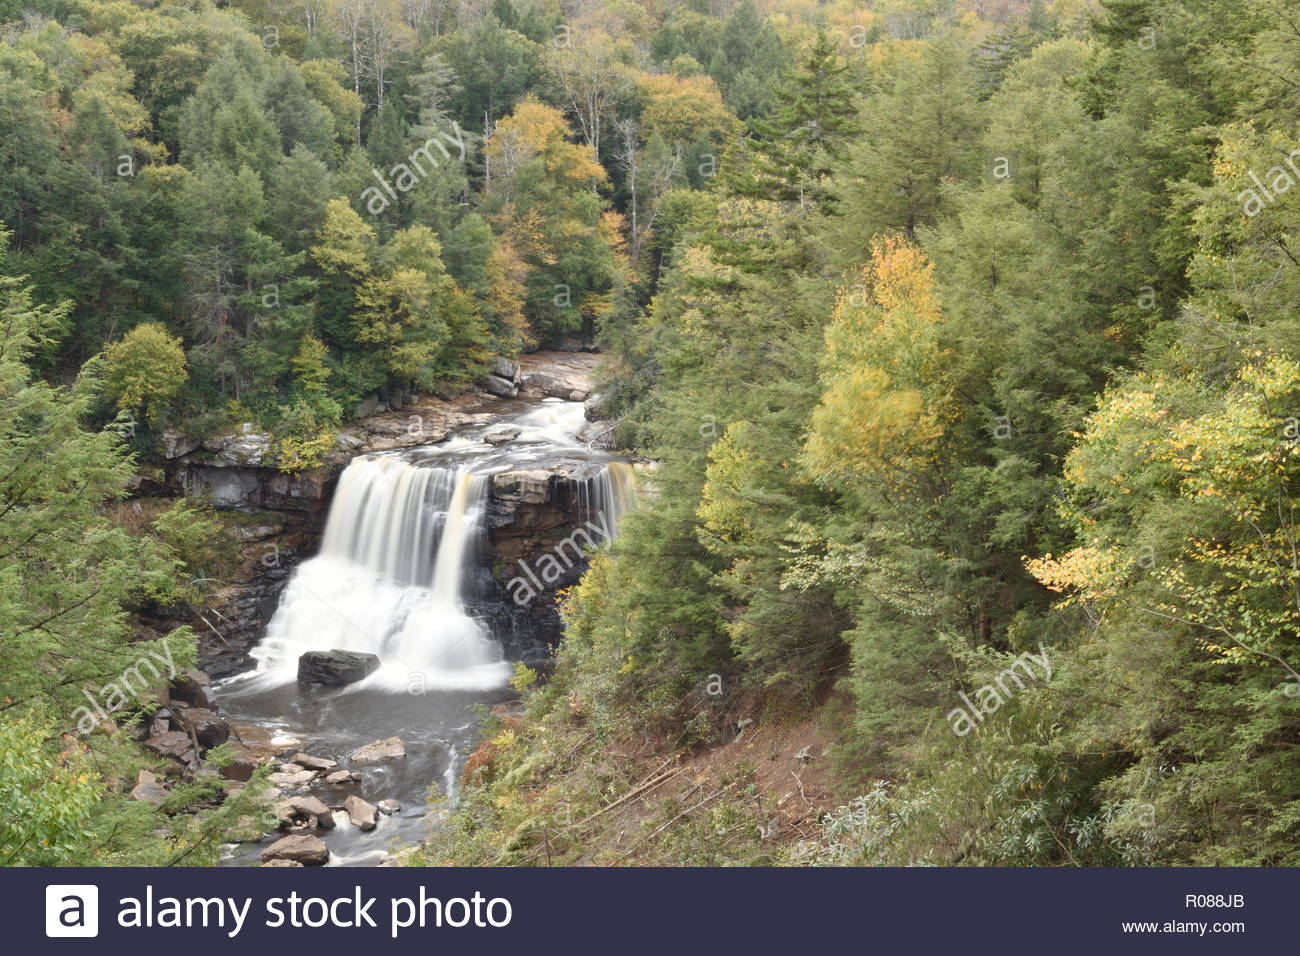 Blackwater Falls as viewed from overlook. Gentle Trail Overlook view of Blackwater Falls at Blackwater Falls State Park in West Virginia. Davis WV USA - Stock Image